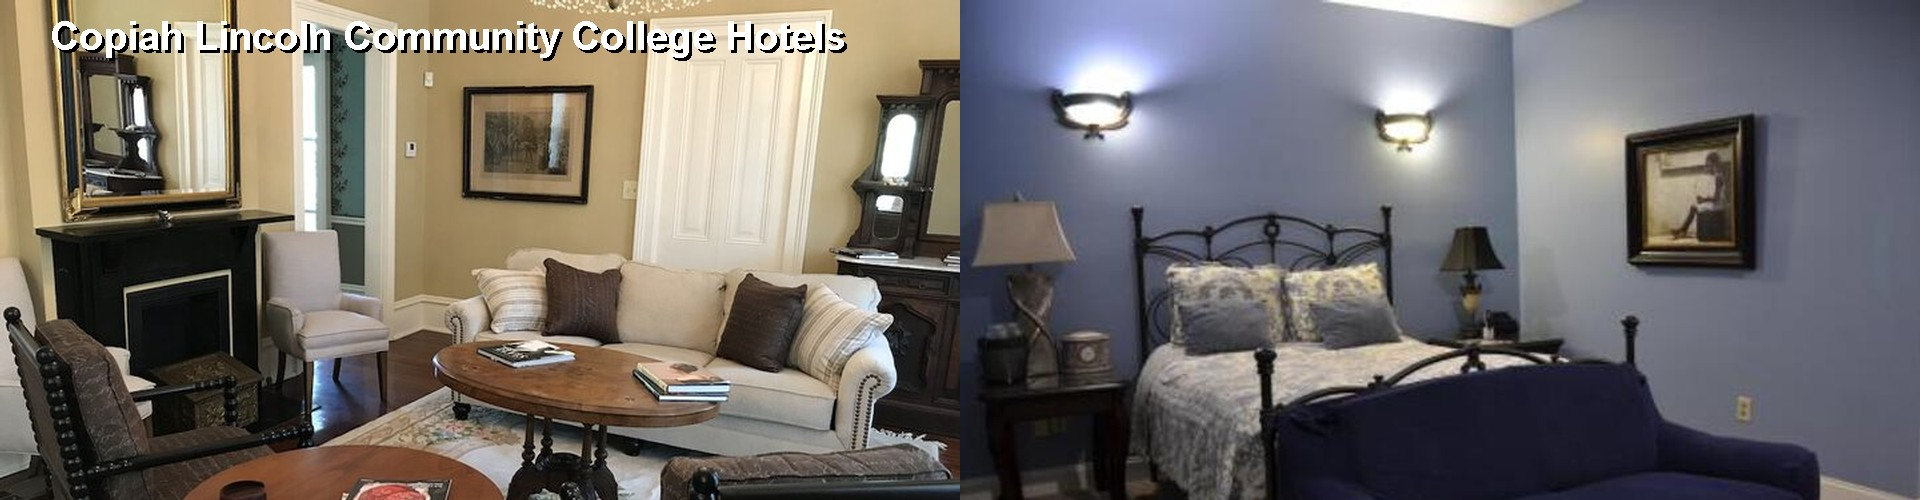 5 Best Hotels near Copiah Lincoln Community College